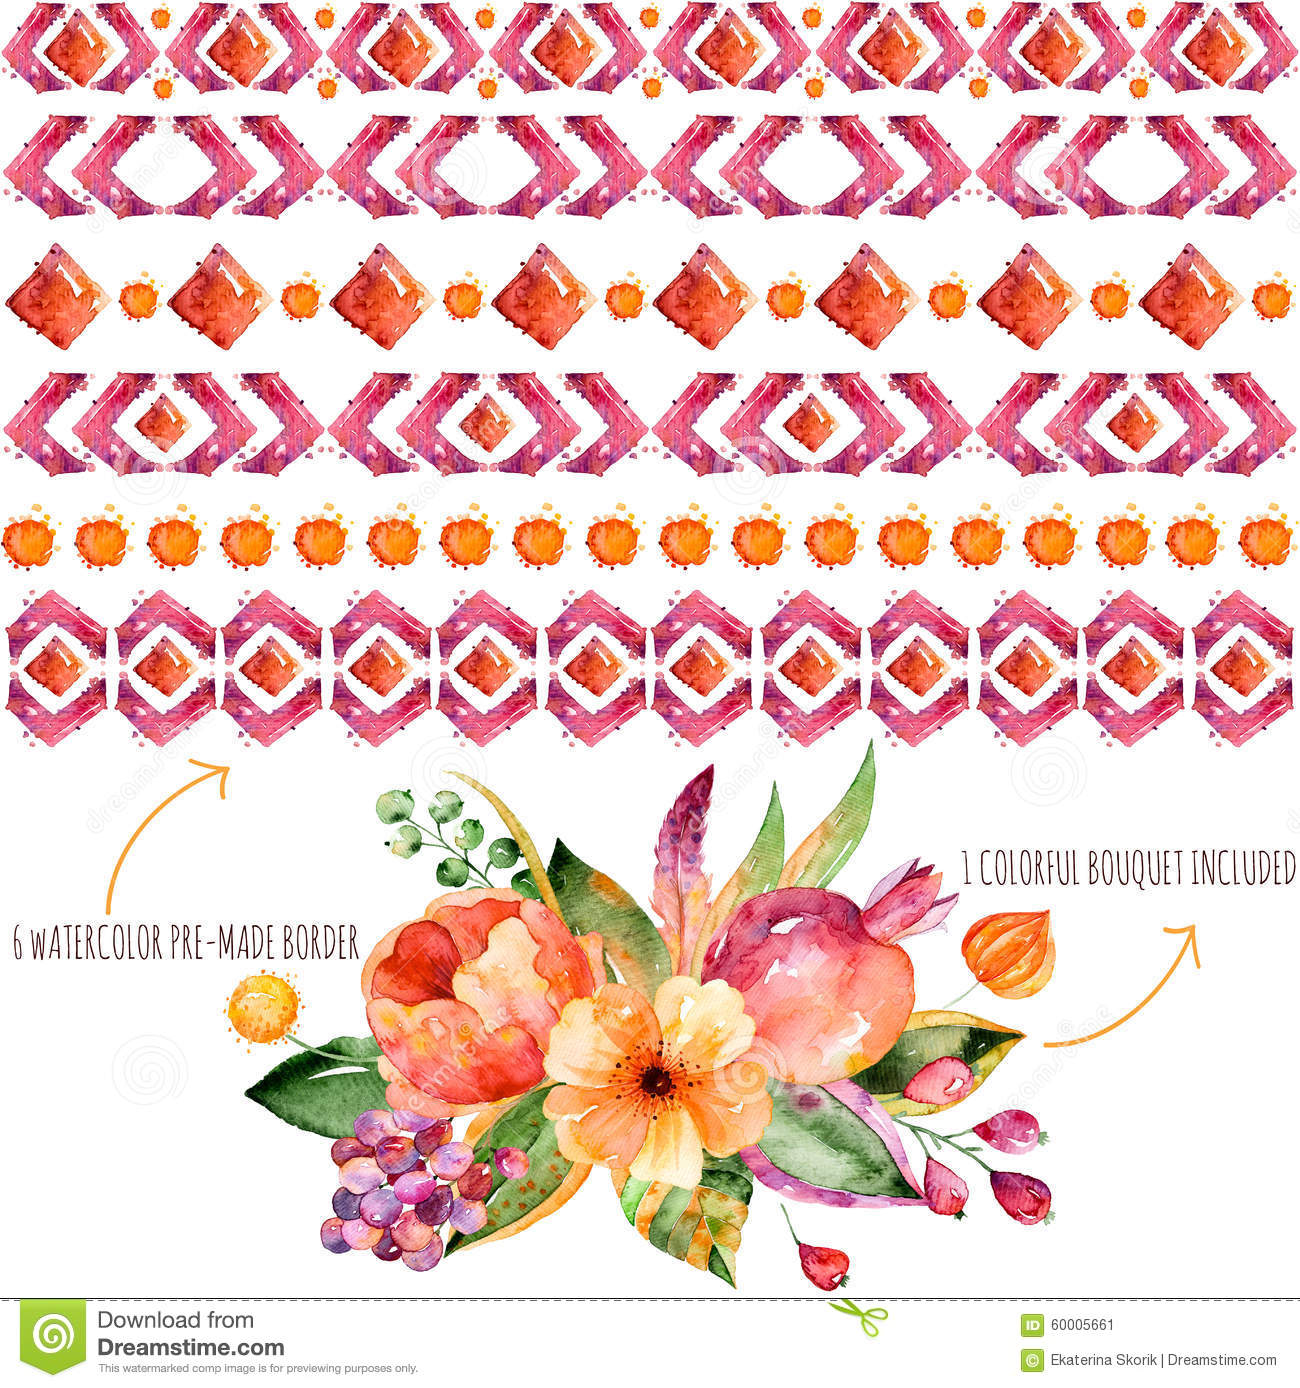 6 Watercolor Borders For Your Own Compositions 1 Colorful Autumn Bouquet With Leaves Flowers Pomegranate Berries And F Illustration 60005661